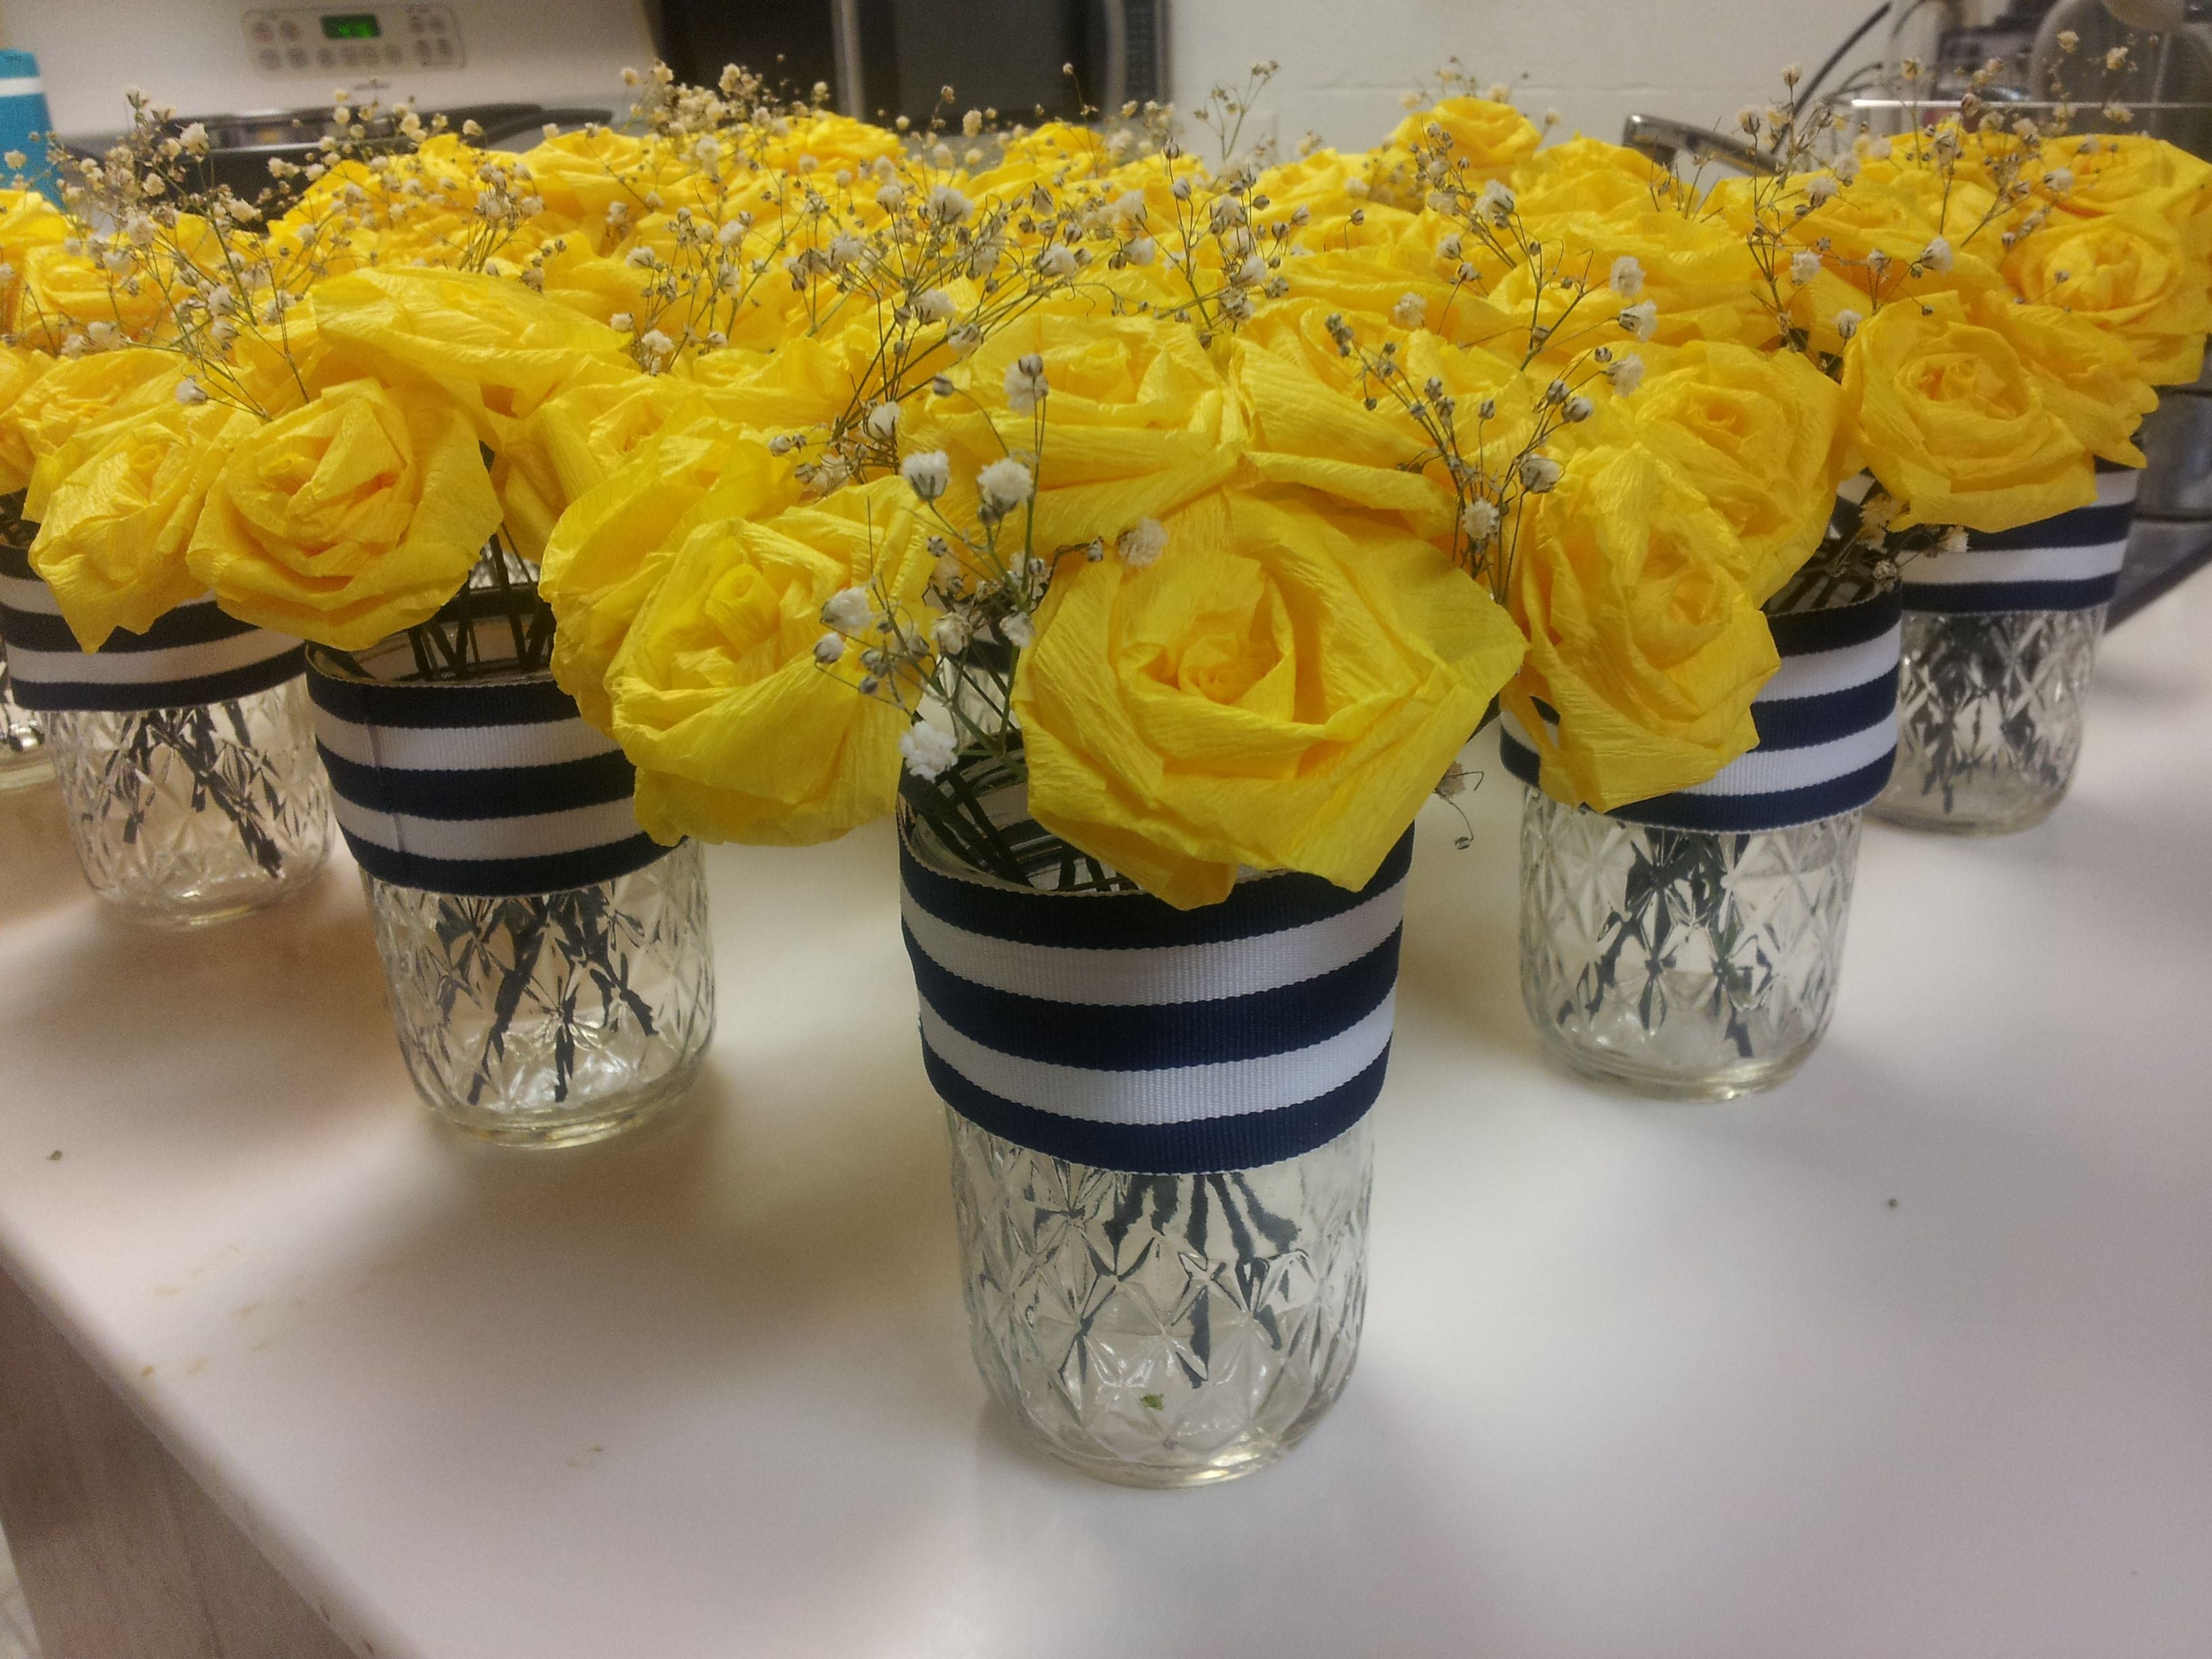 Nautical Centerpiece Made From Crepe Paper Roses And Mason Jars I